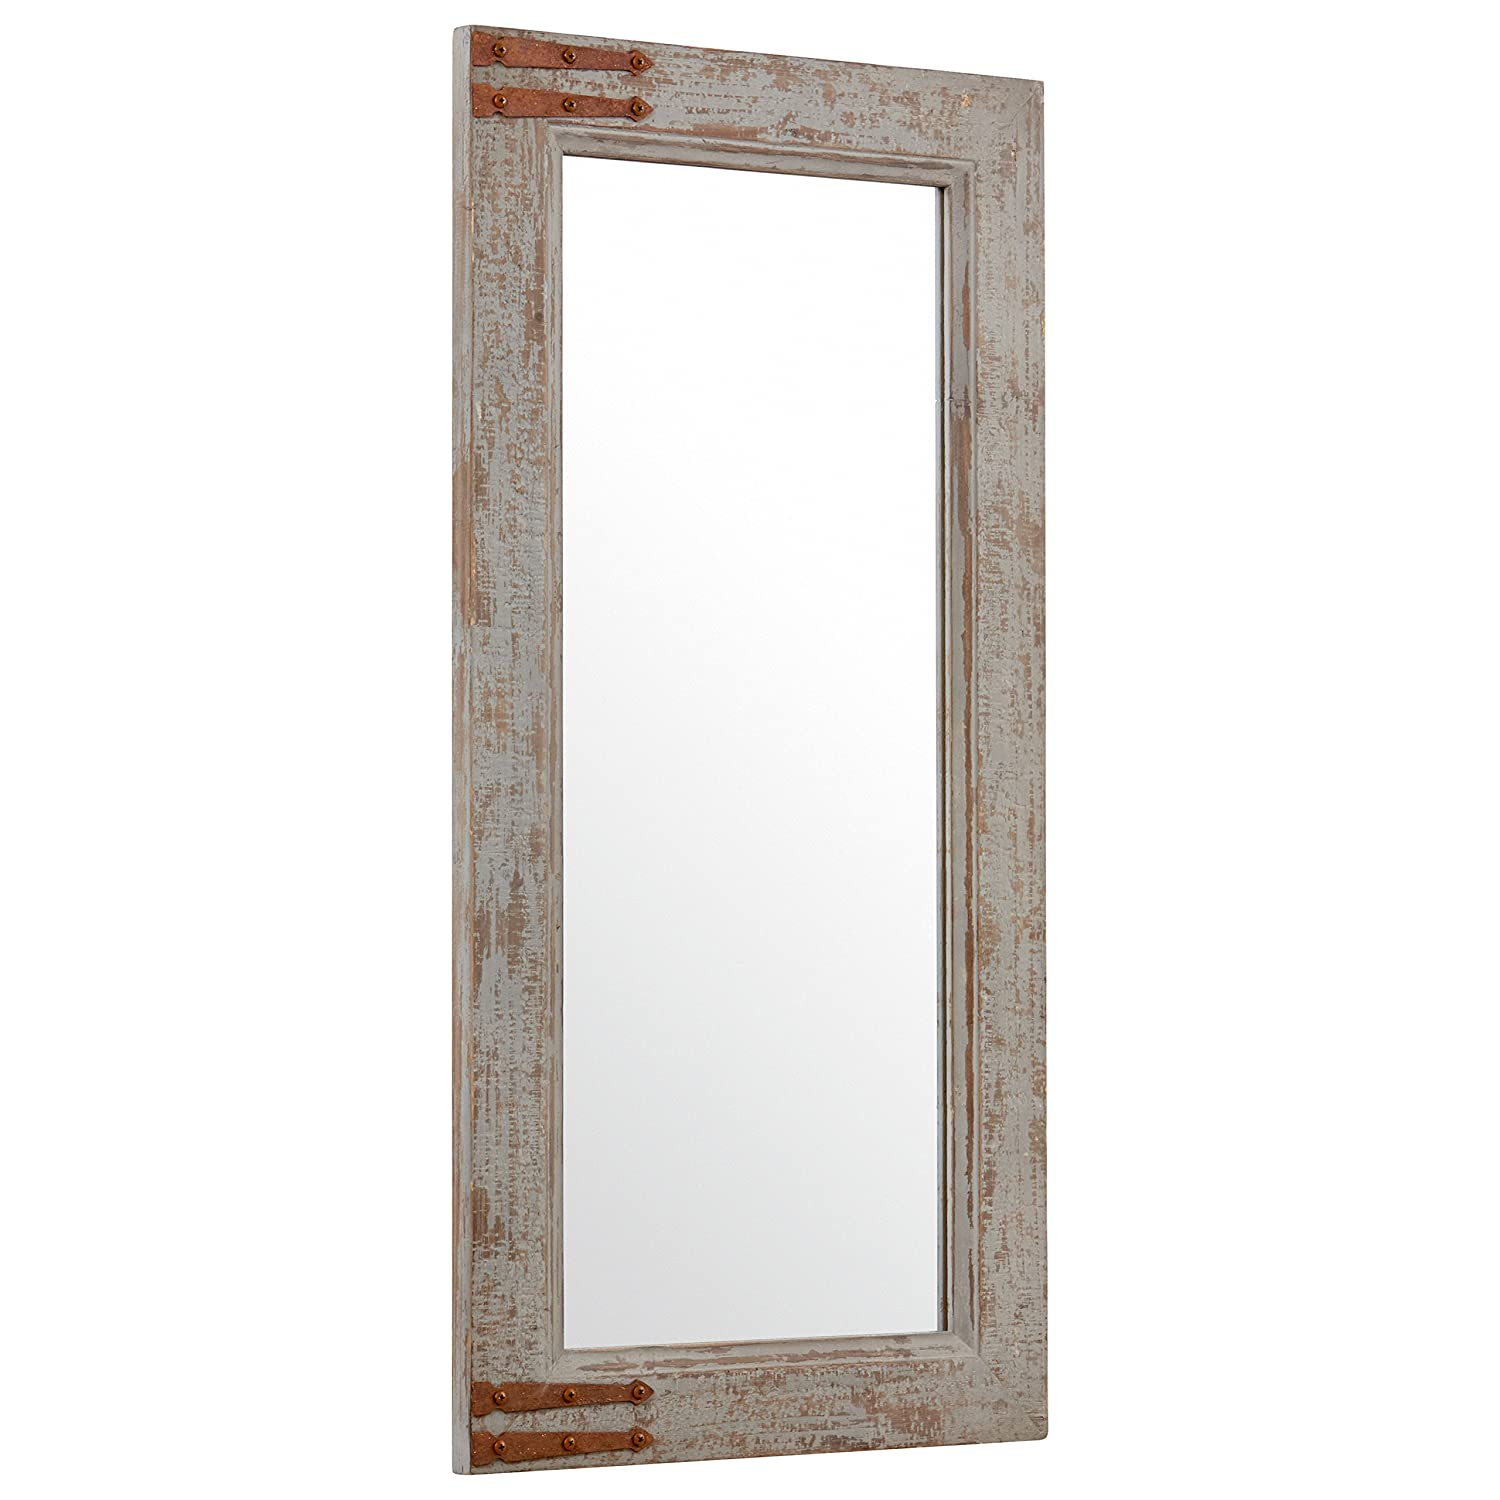 Stone Beam Vintage-Look Rectangular Hanging Wall Frame Mirror Decor, 36.25 Inch Height, Gray